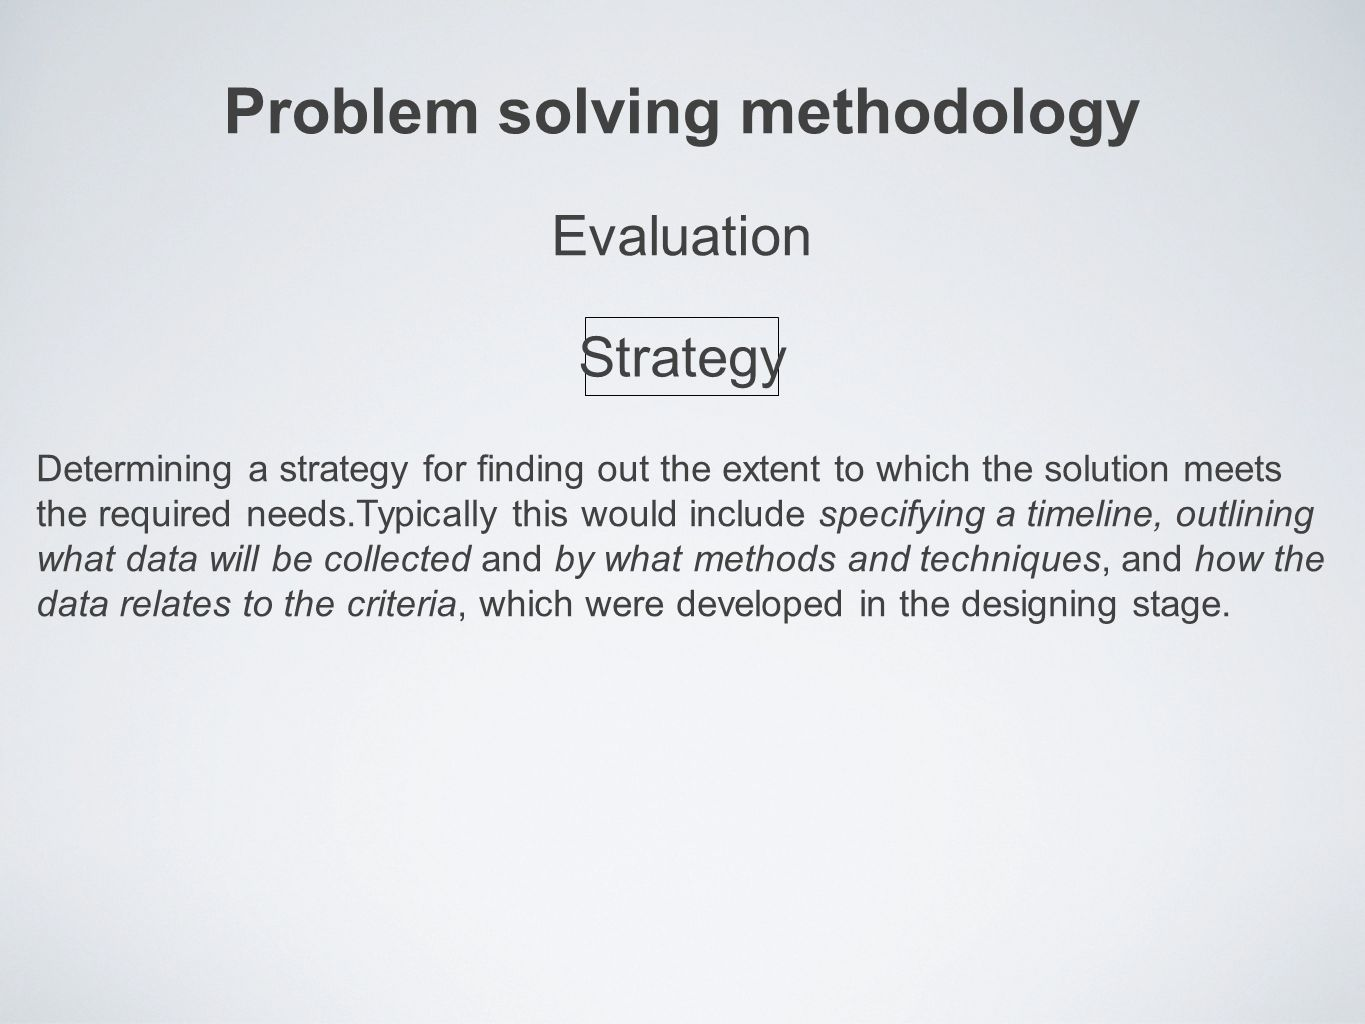 Problem solving methodology Determining a strategy for finding out the extent to which the solution meets the required needs.Typically this would include specifying a timeline, outlining what data will be collected and by what methods and techniques, and how the data relates to the criteria, which were developed in the designing stage.